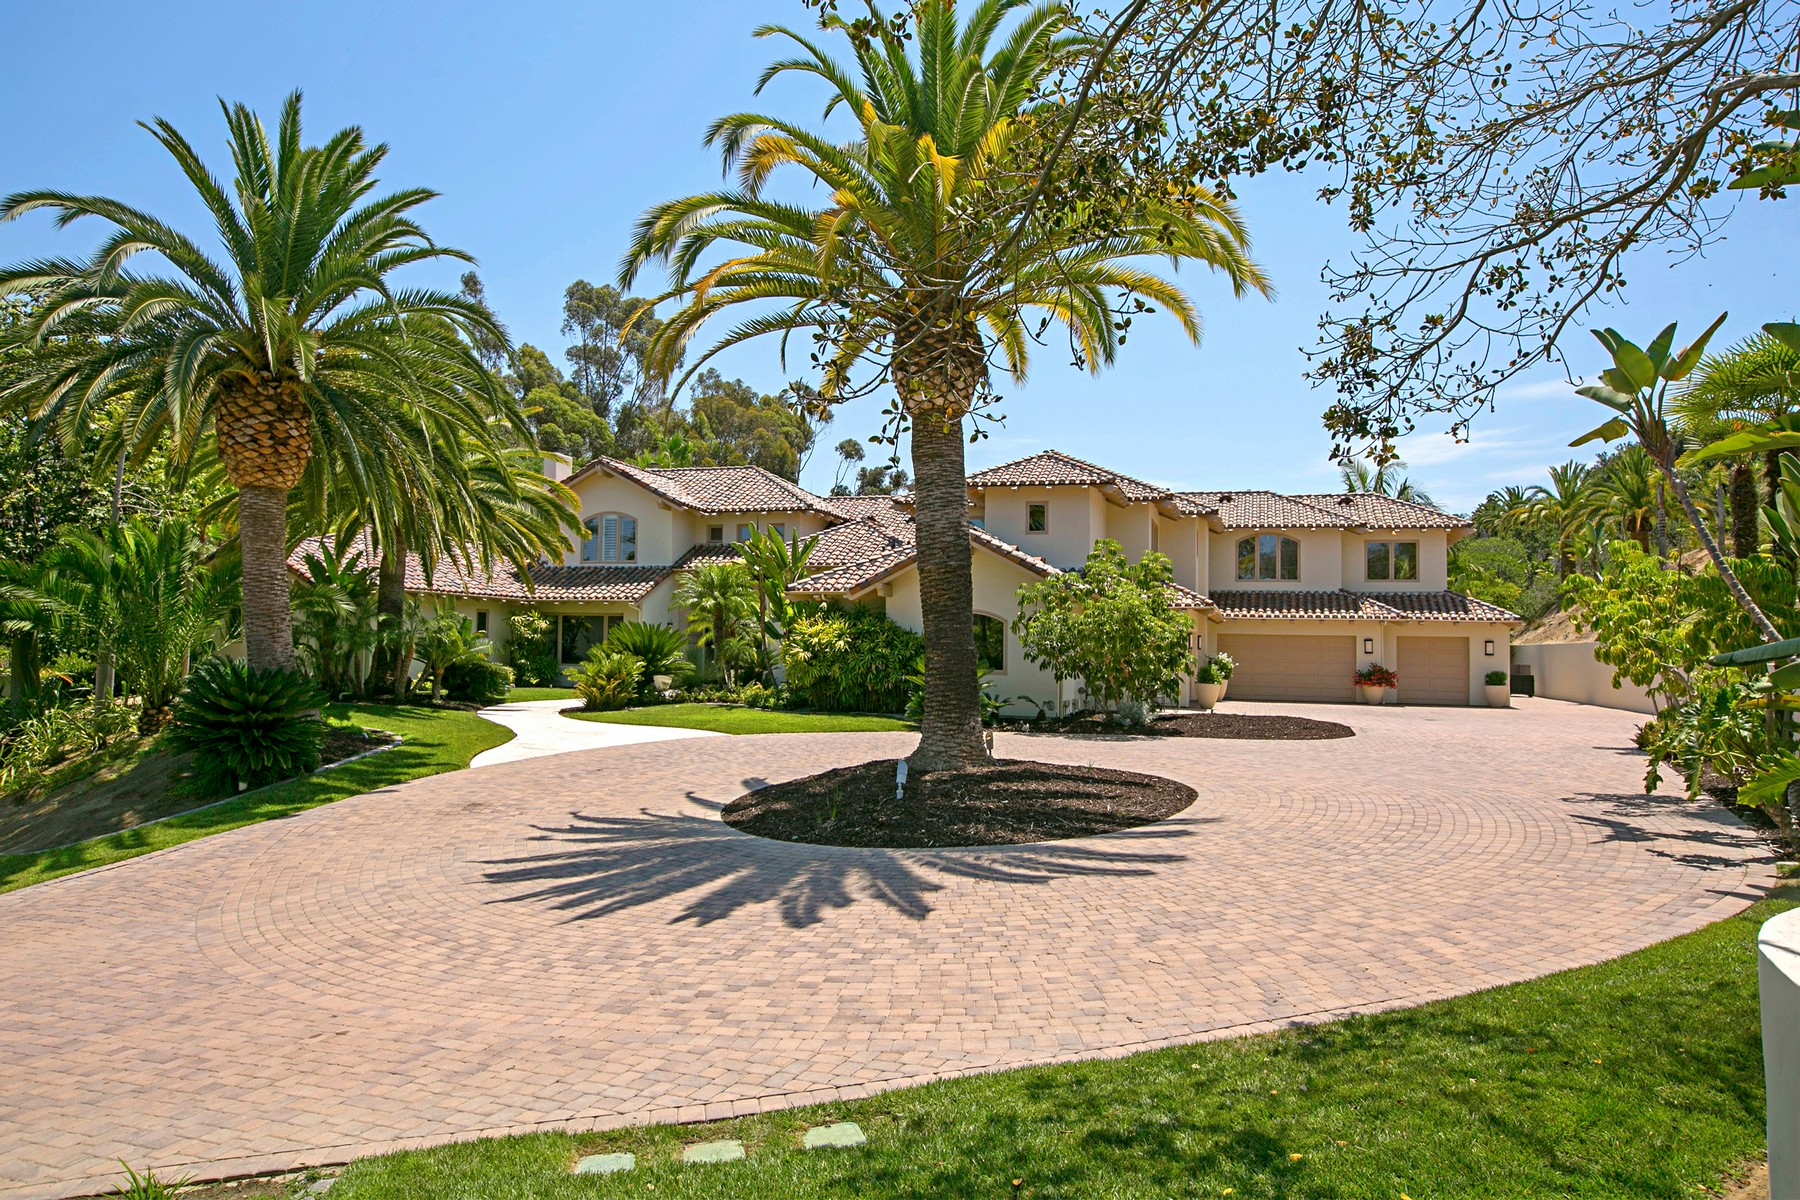 Additional photo for property listing at 17373 Calle Serena  Rancho Santa Fe, Californie 92067 États-Unis